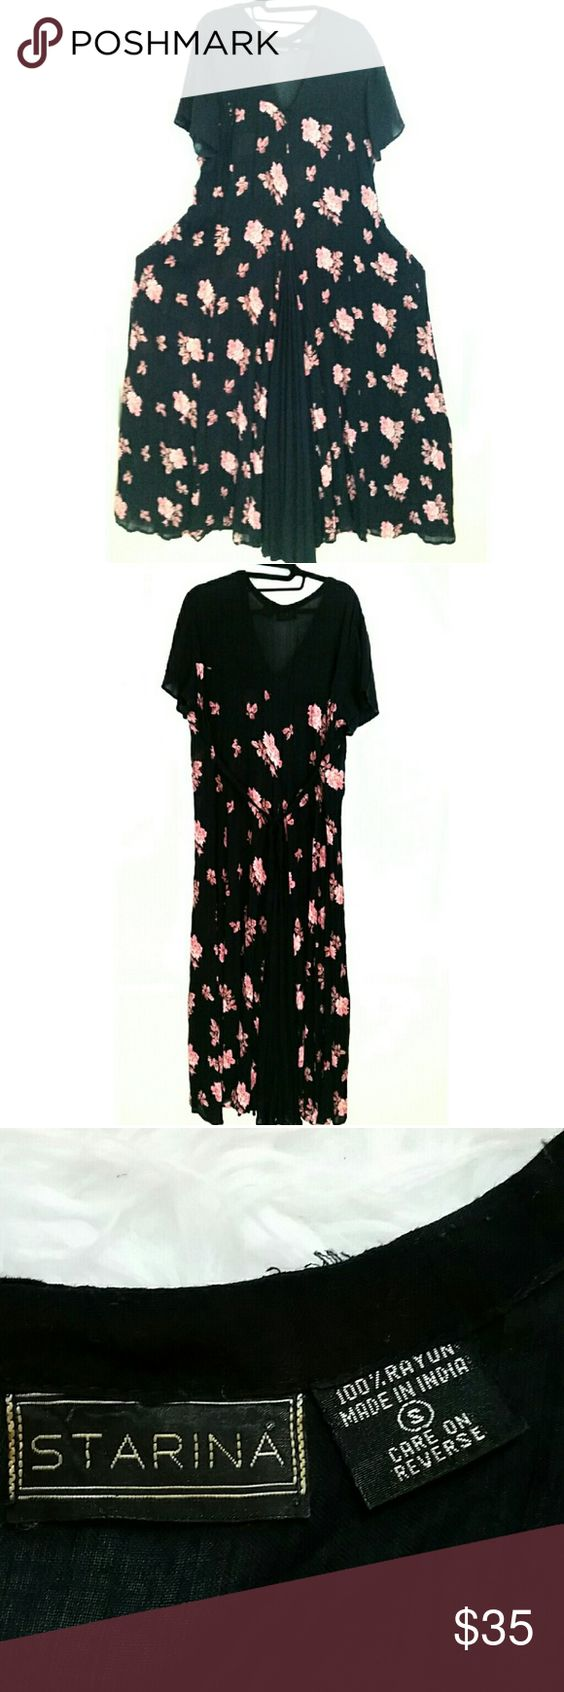 Starina Floral Boho Grunge Vintage Maxi Dress S Beautiful Starina flowy black/pink floral vintage Boho maxi dress. Approximate measurements in inches taken laying flat & measuring from corner to corner then doubling to get full measurement around.  BUST: 44 WAIST: 48 HIP: 64 LENGTH: 55 FABRIC: Starina Dresses Maxi